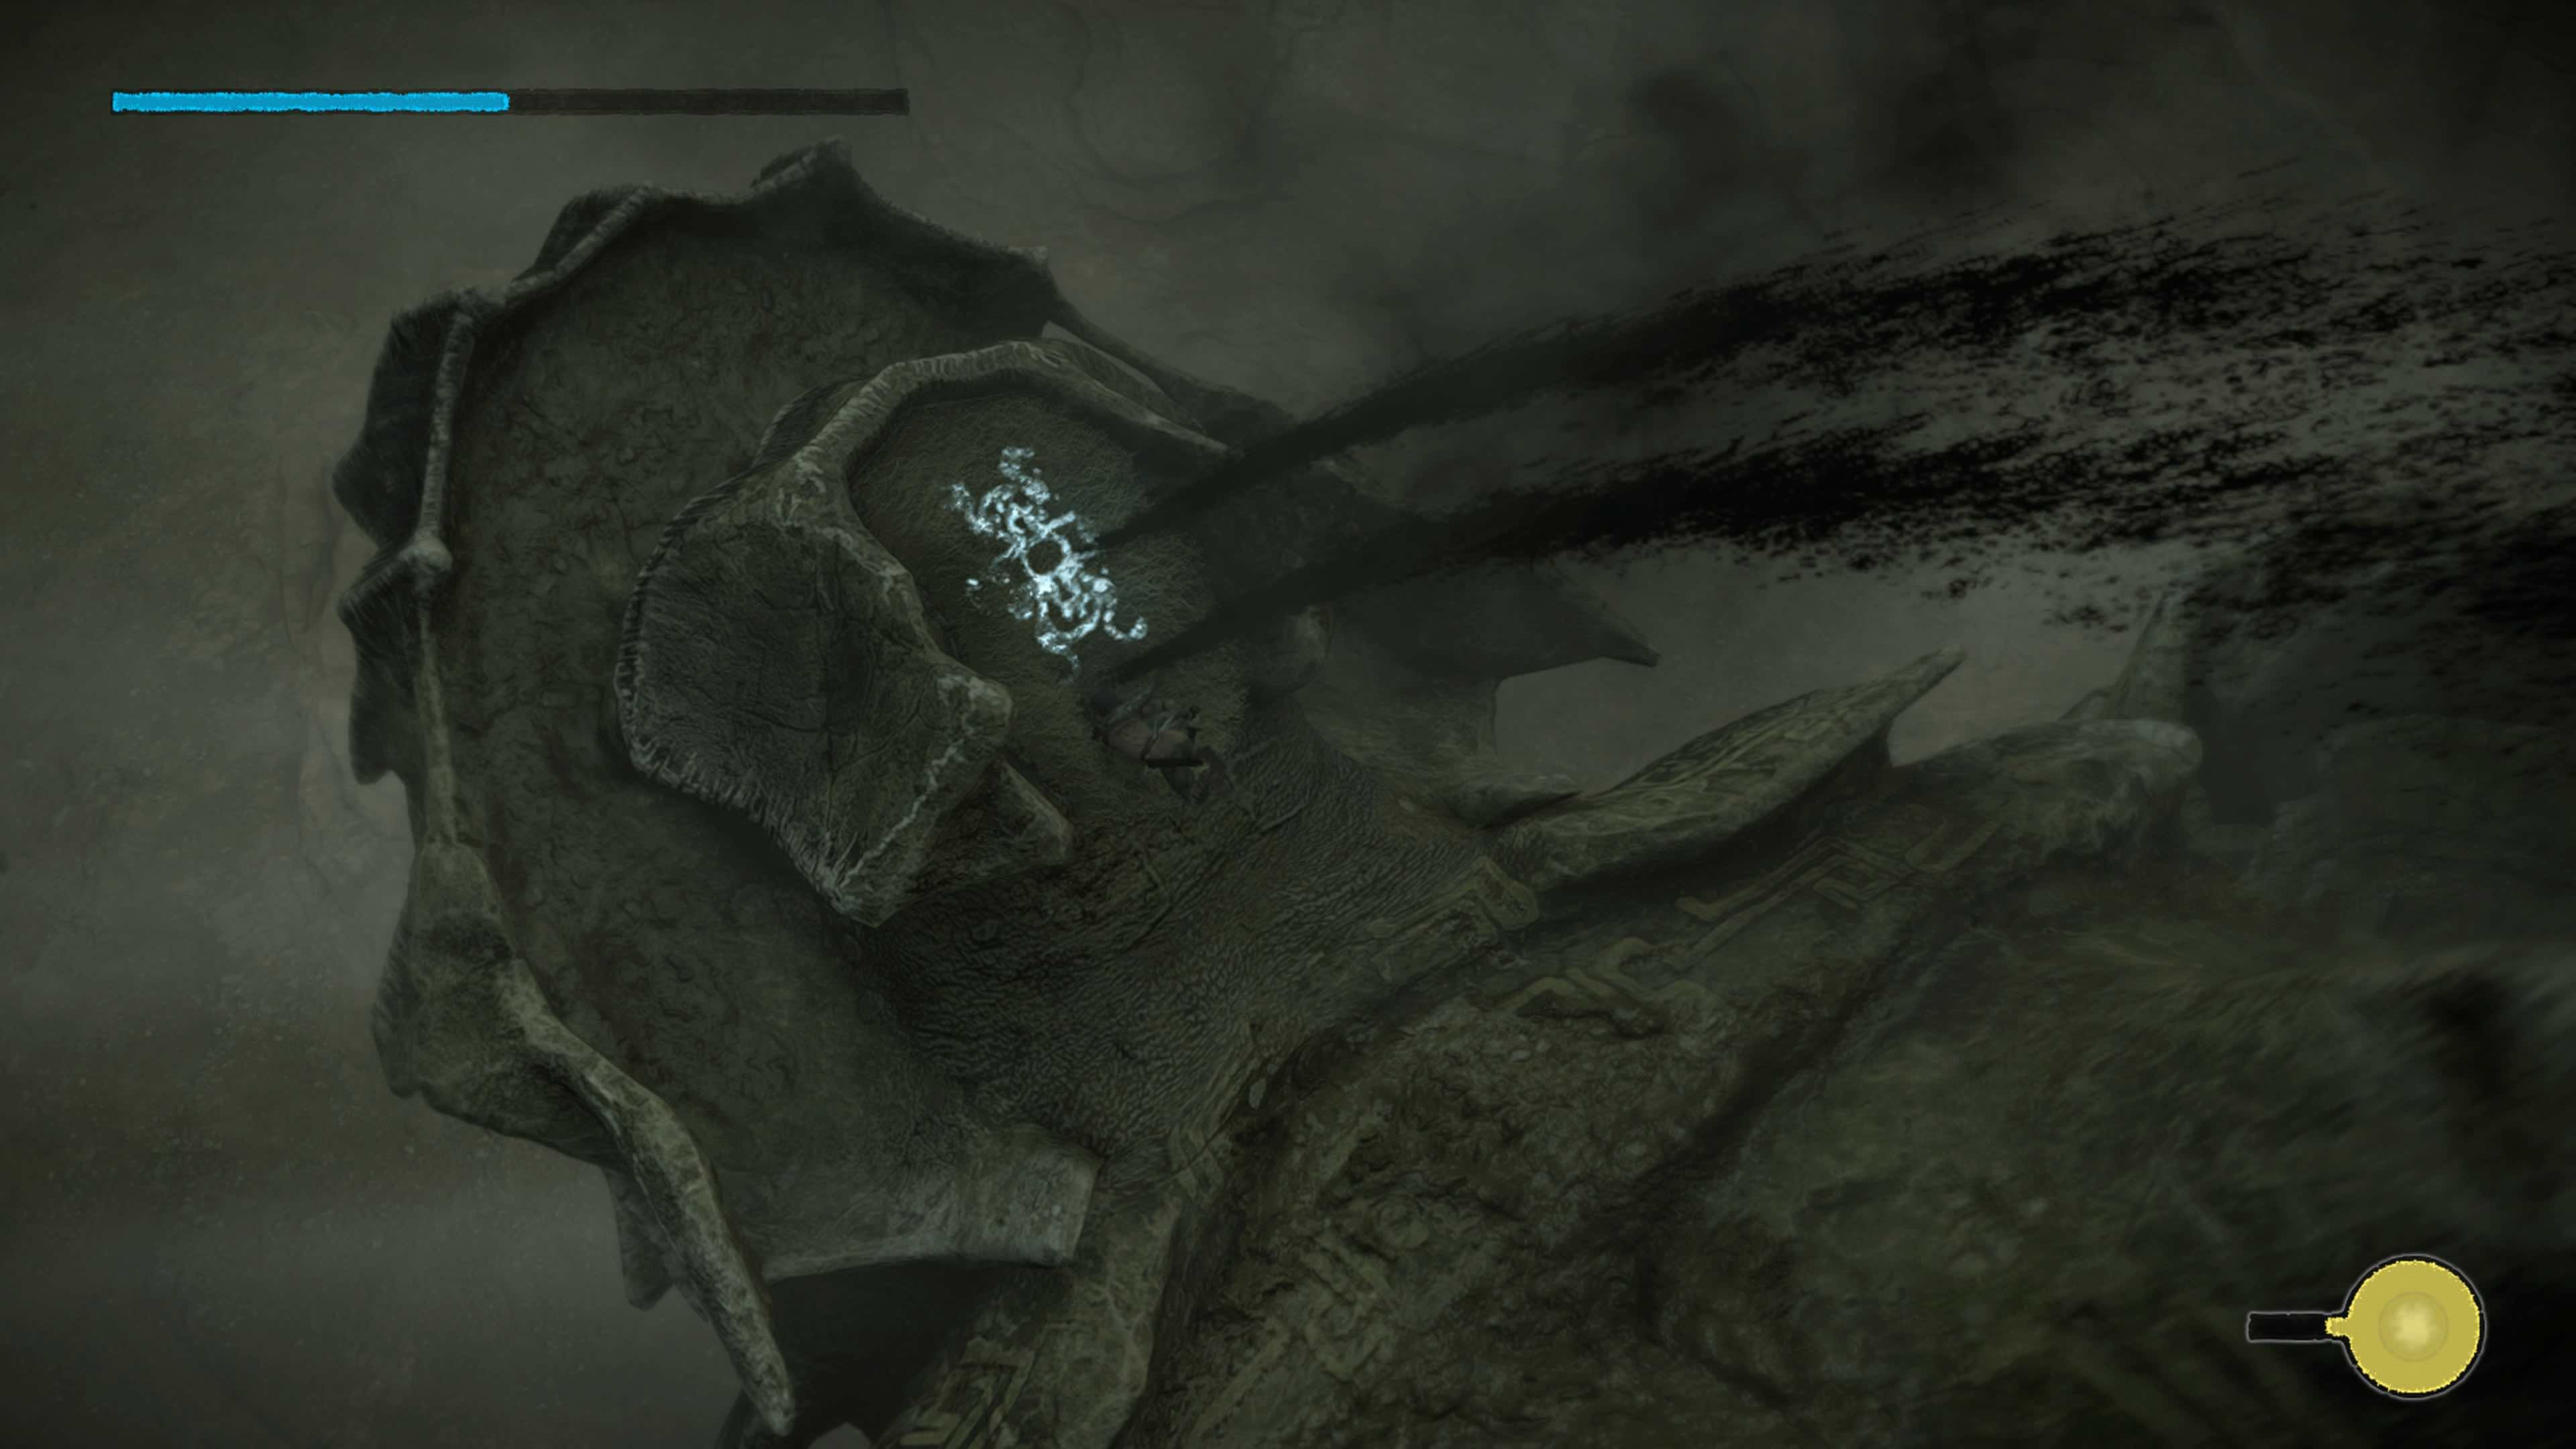 Shadow_of_the_Colossus_Coloso_9_1